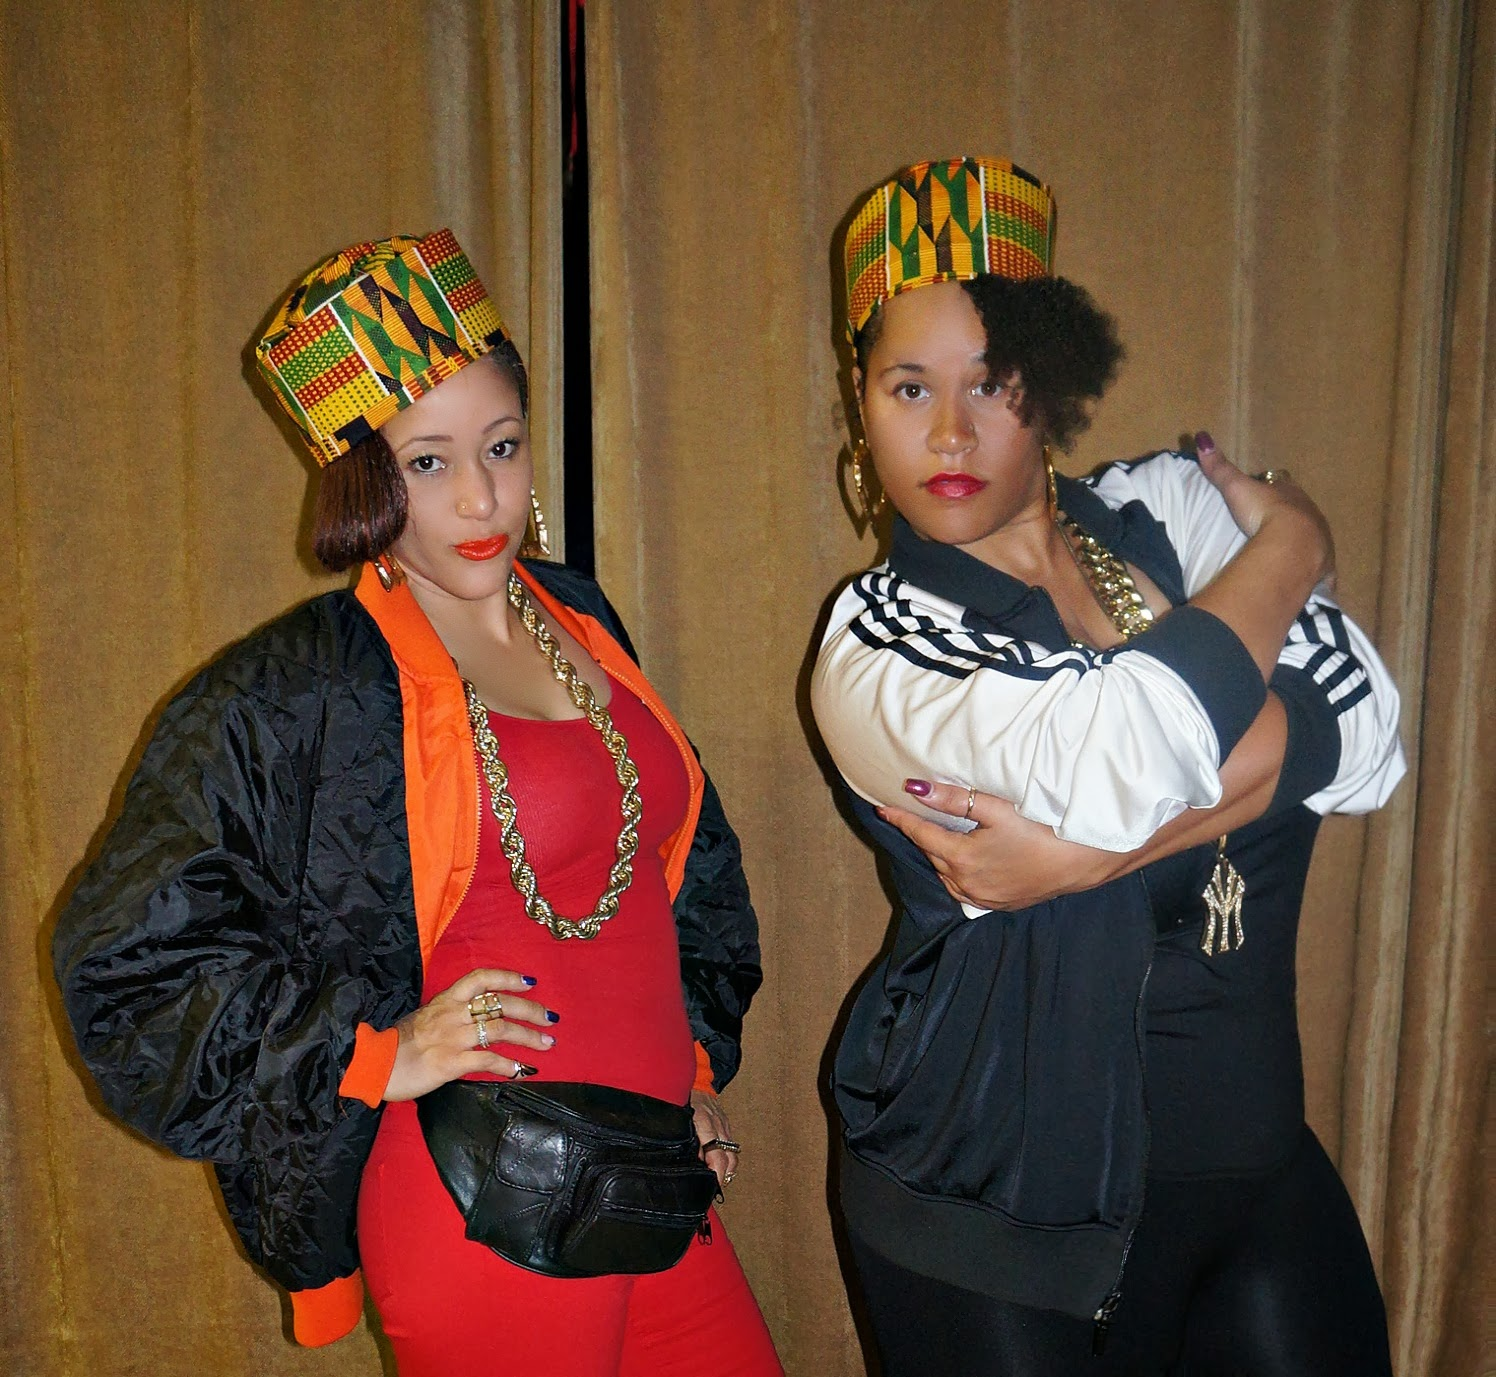 SALT & PEPA Here & We're In Effect! Halloween 2013 | Dress to the T